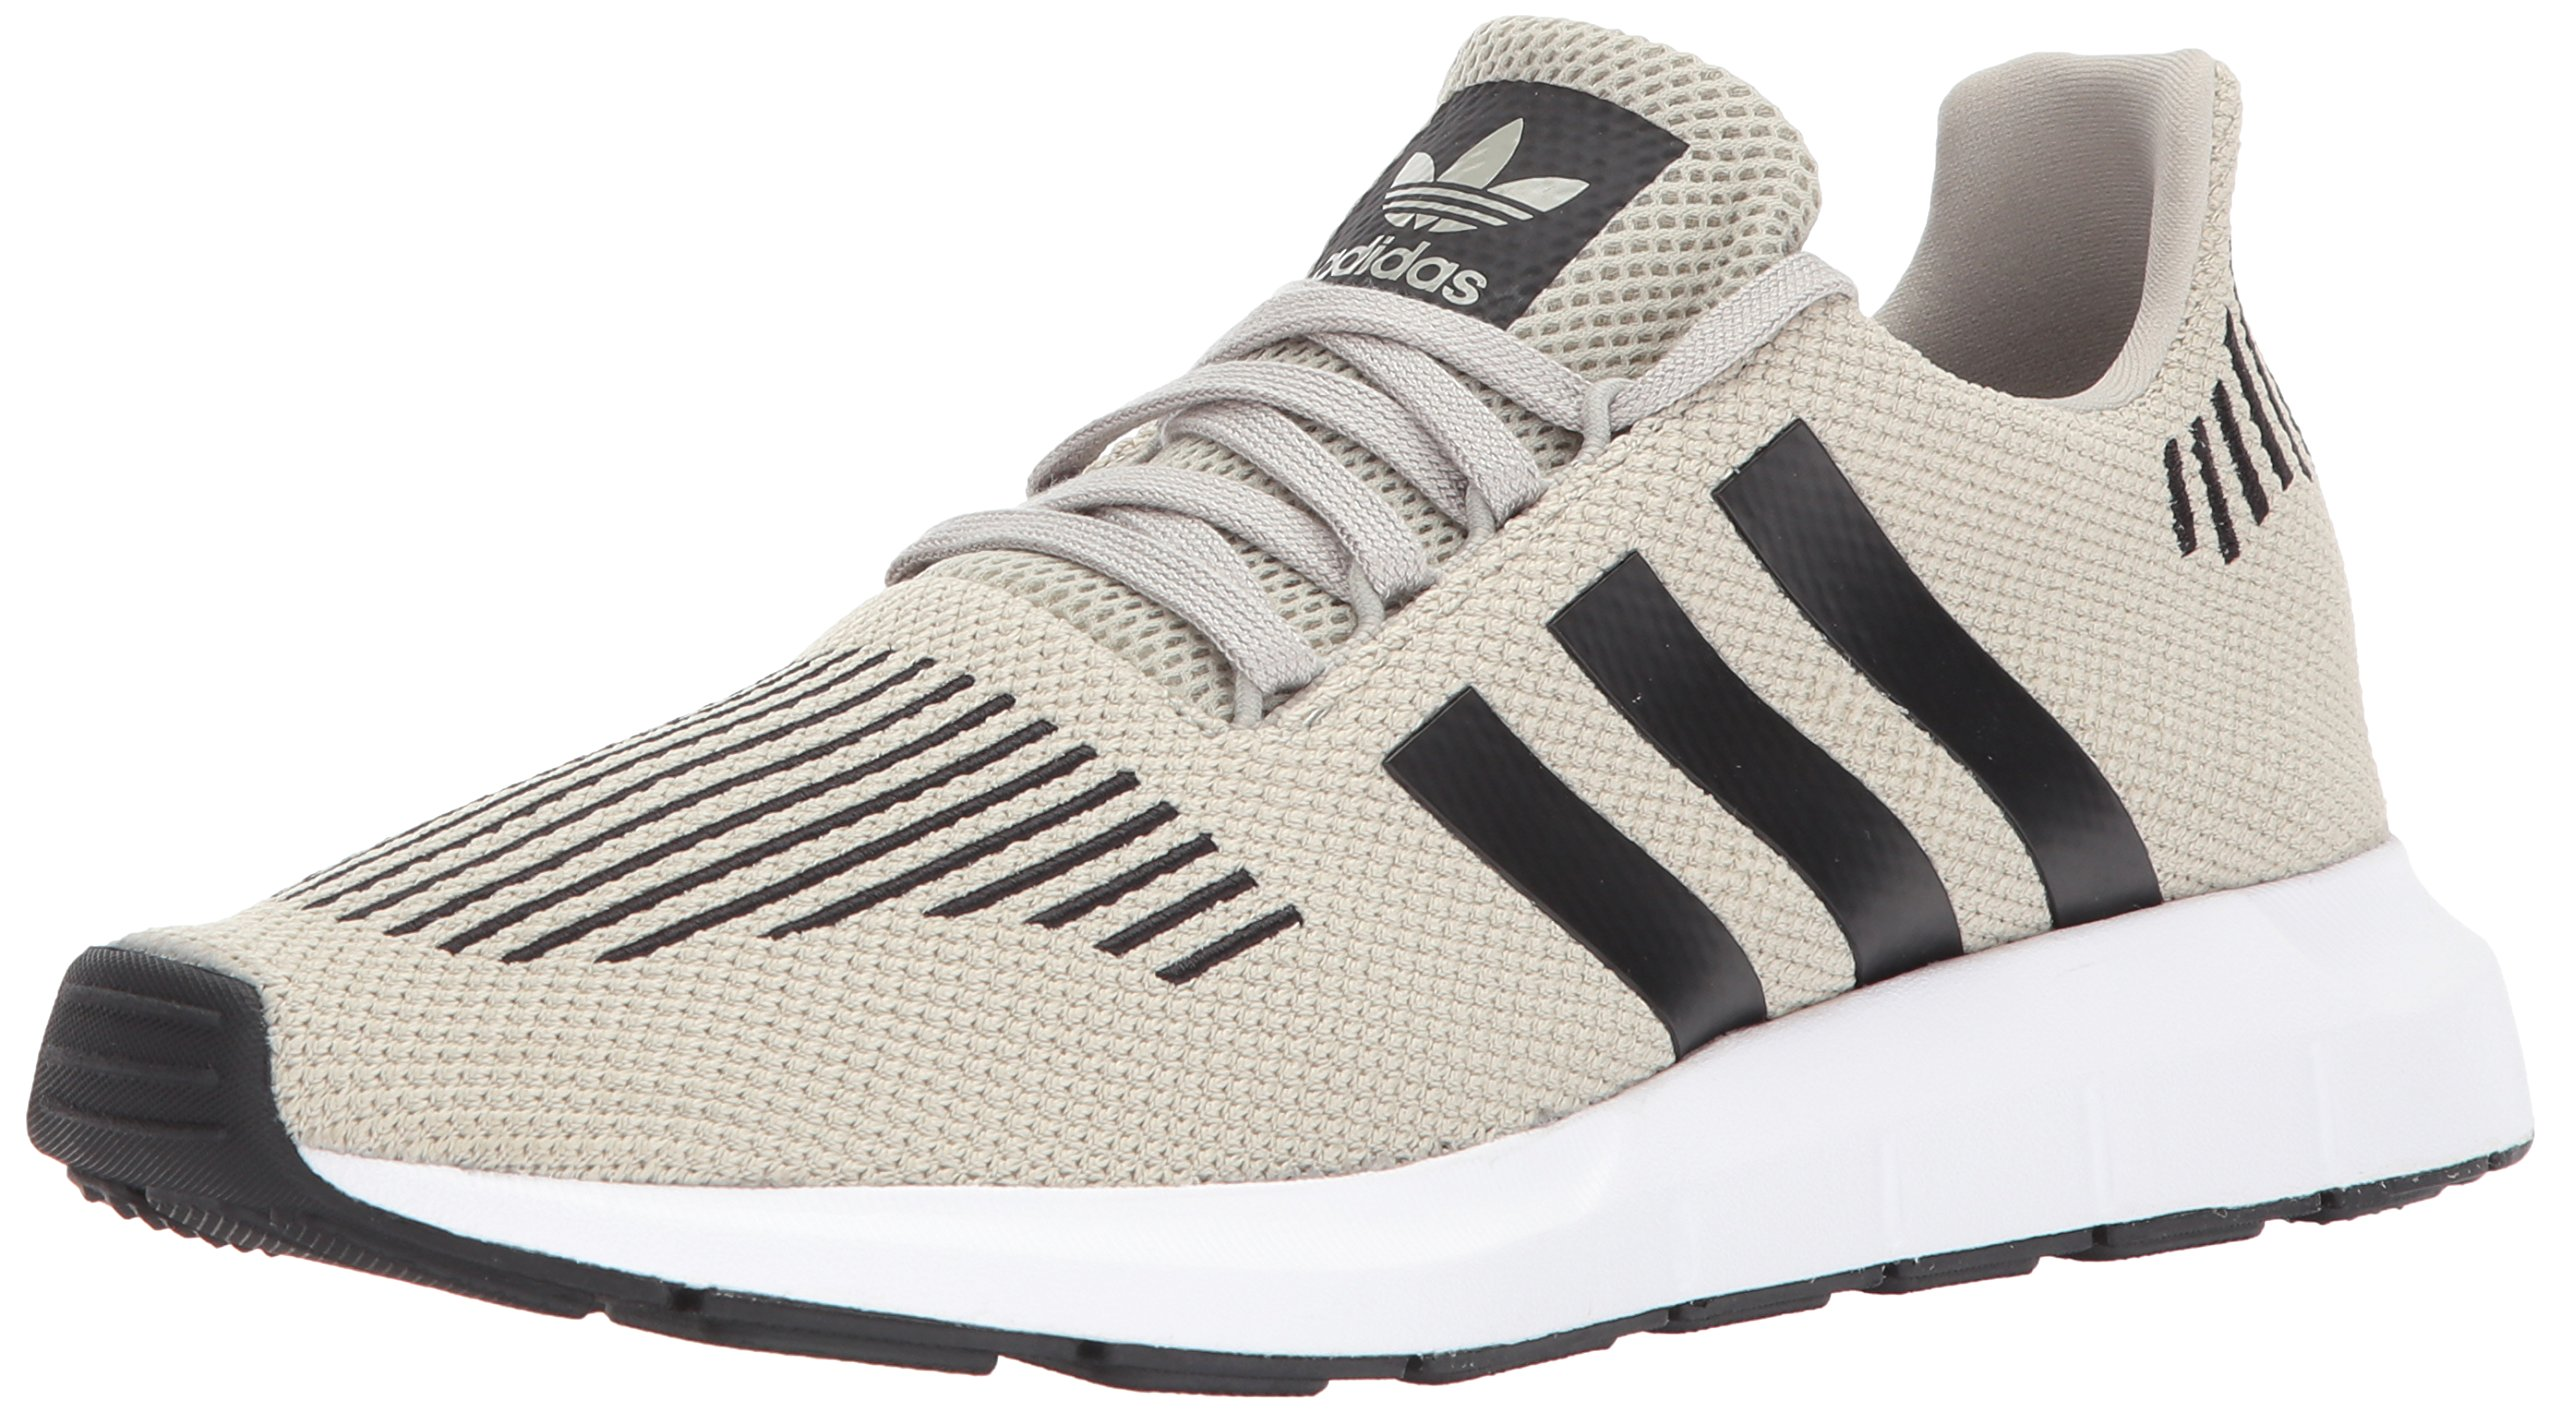 adidas Originals Men's Swift Run, Sesame/Black/White, 11 Medium US by adidas Originals